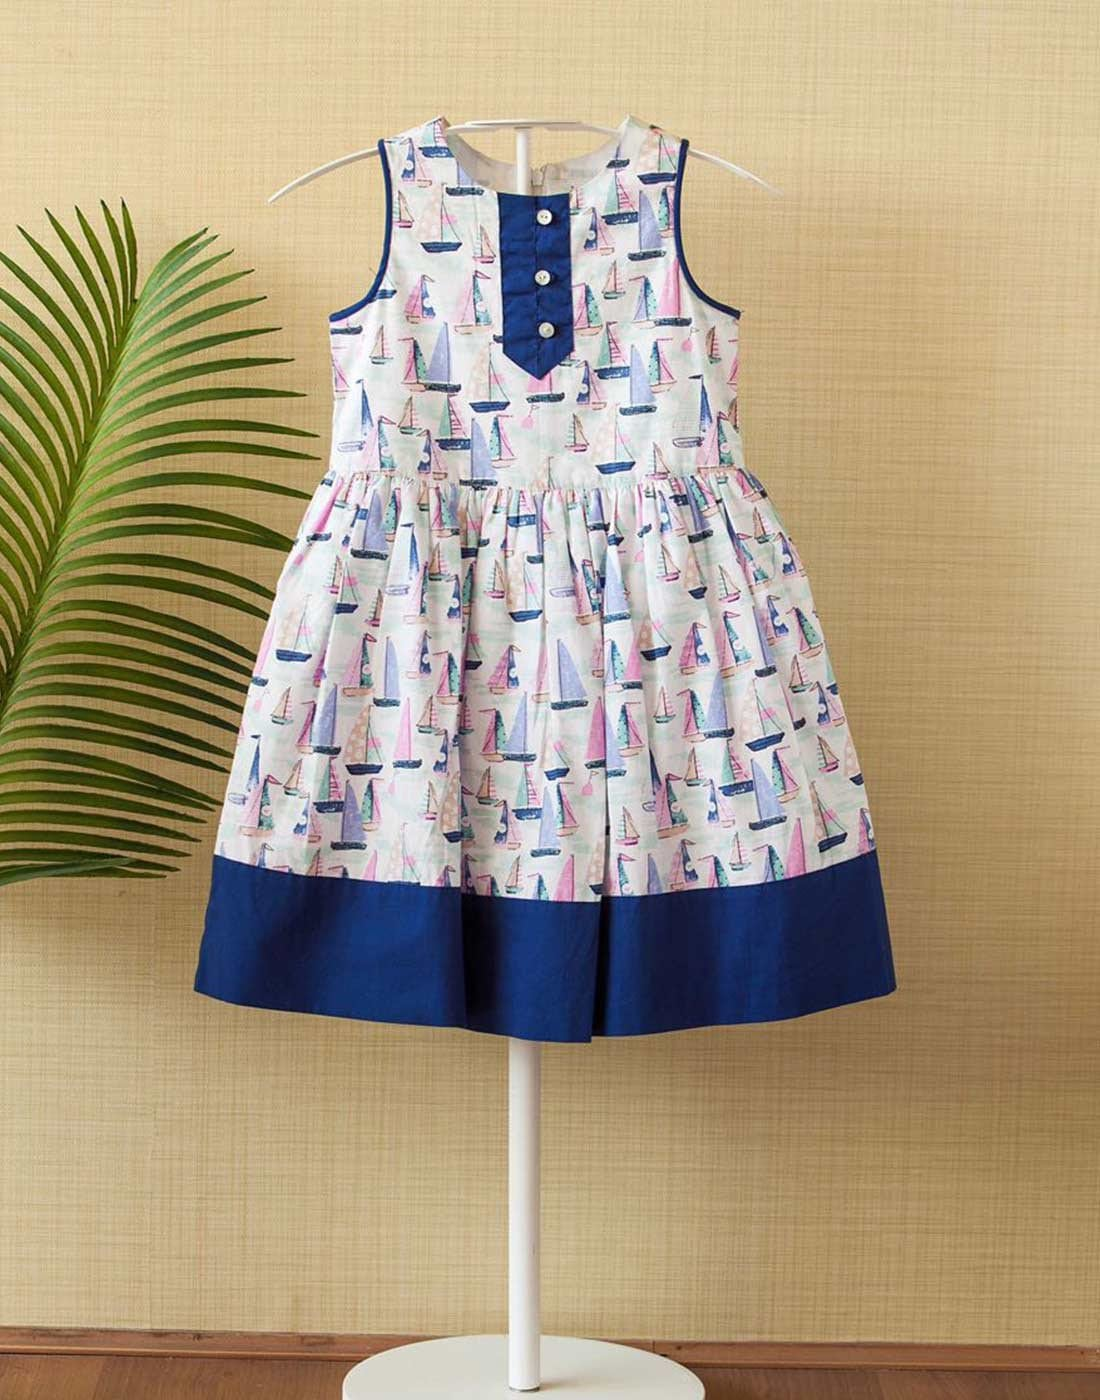 The Boat Print Dress